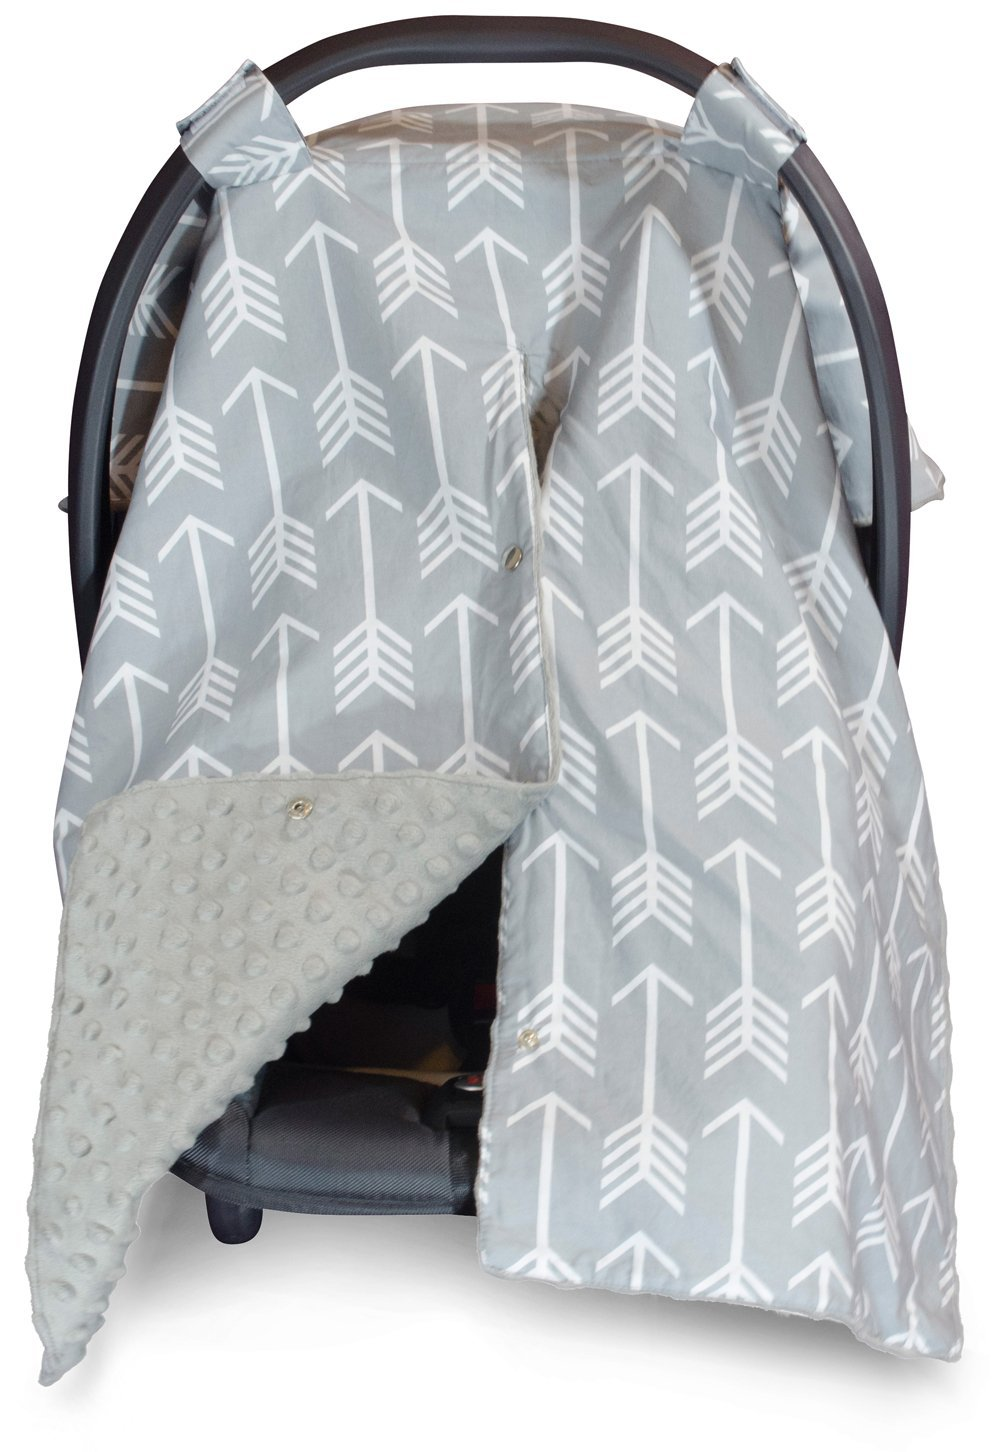 2 in 1 Carseat Canopy and Nursing Cover Up with Peekaboo Opening | Large Infant Car  sc 1 st  Amazon.com : universal car seat canopy - memphite.com